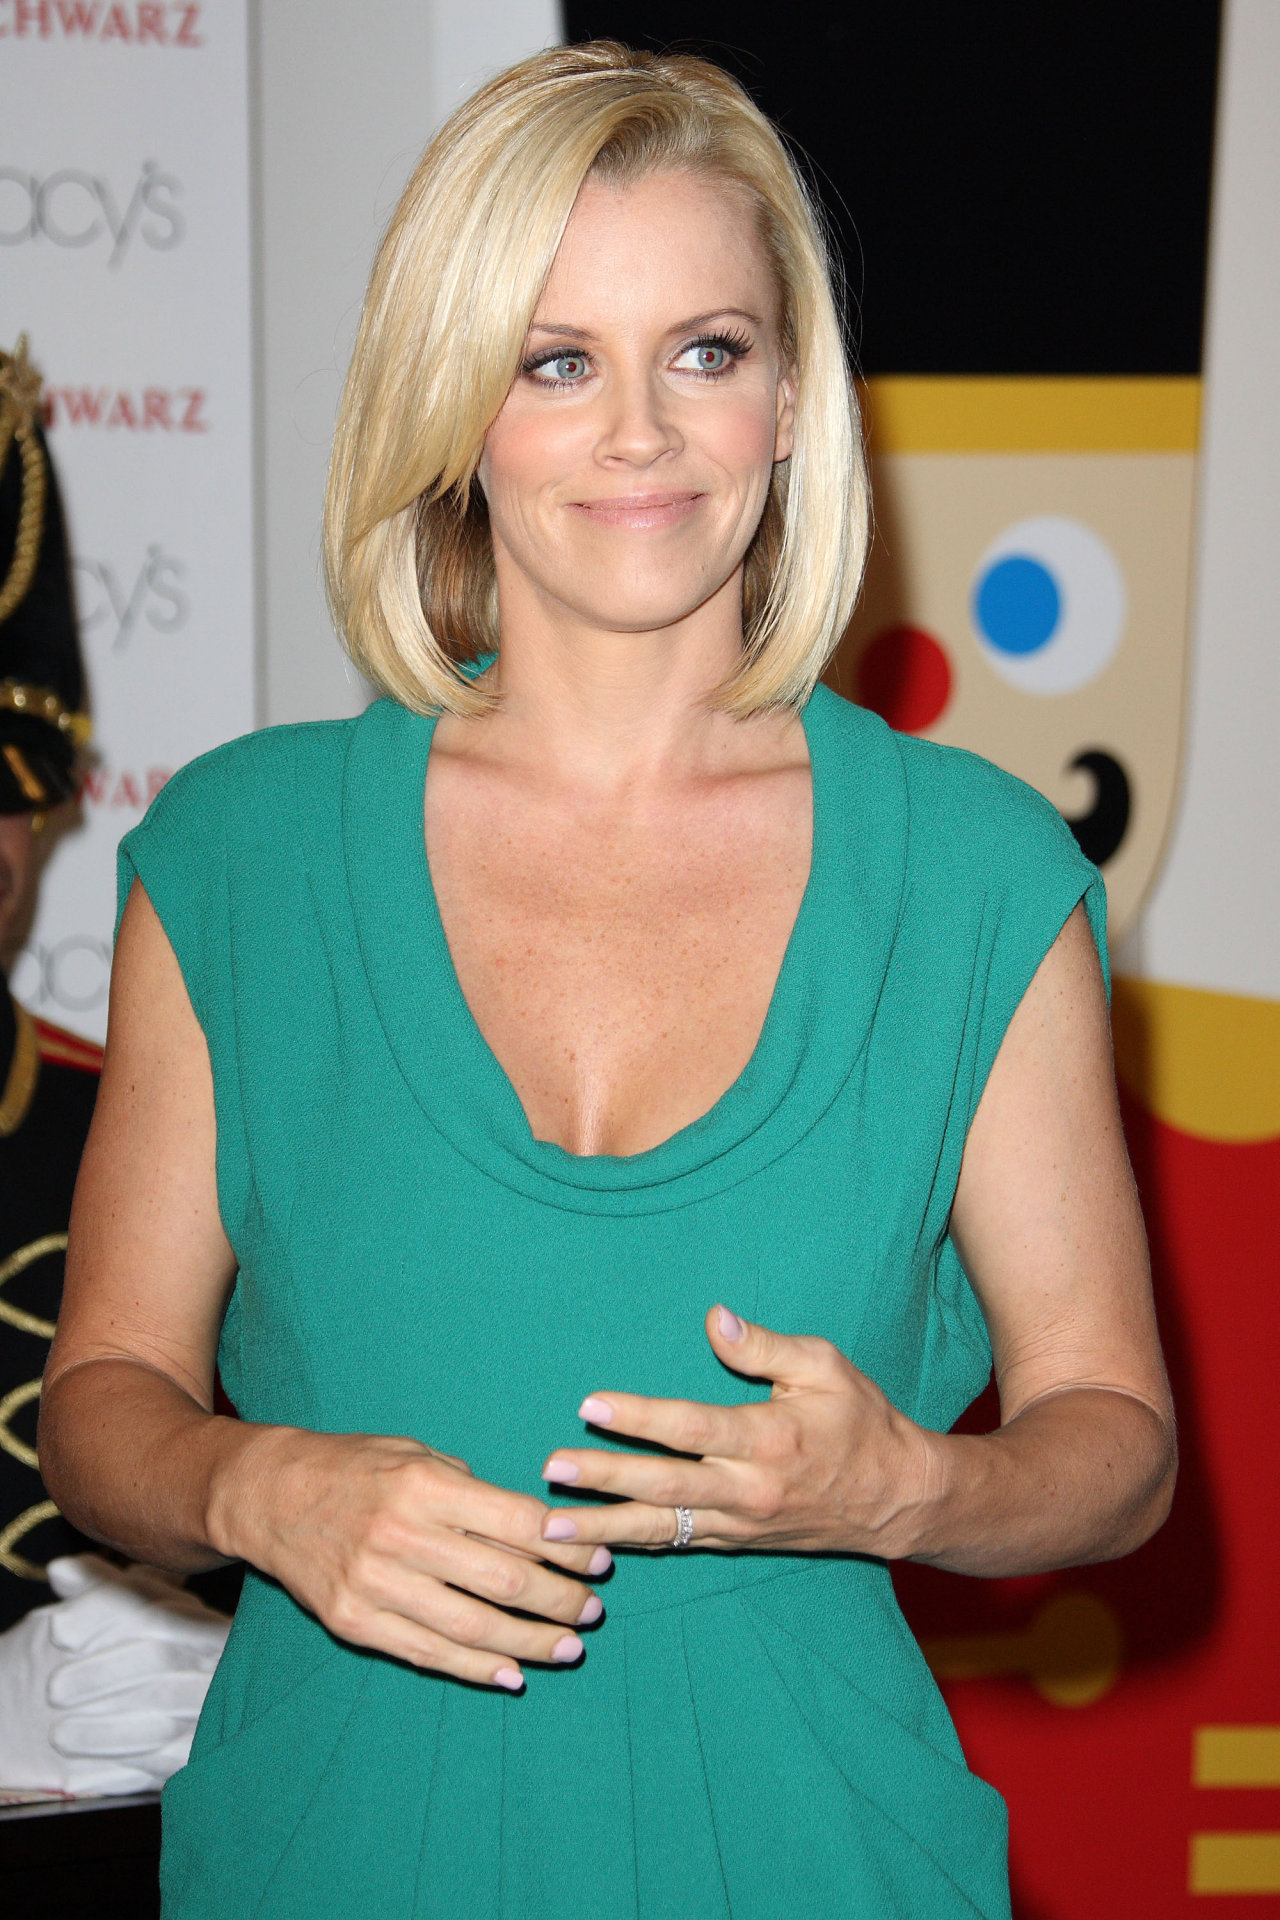 Jenny mccarthy wallpapers 73736 top rated jenny mccarthy photos